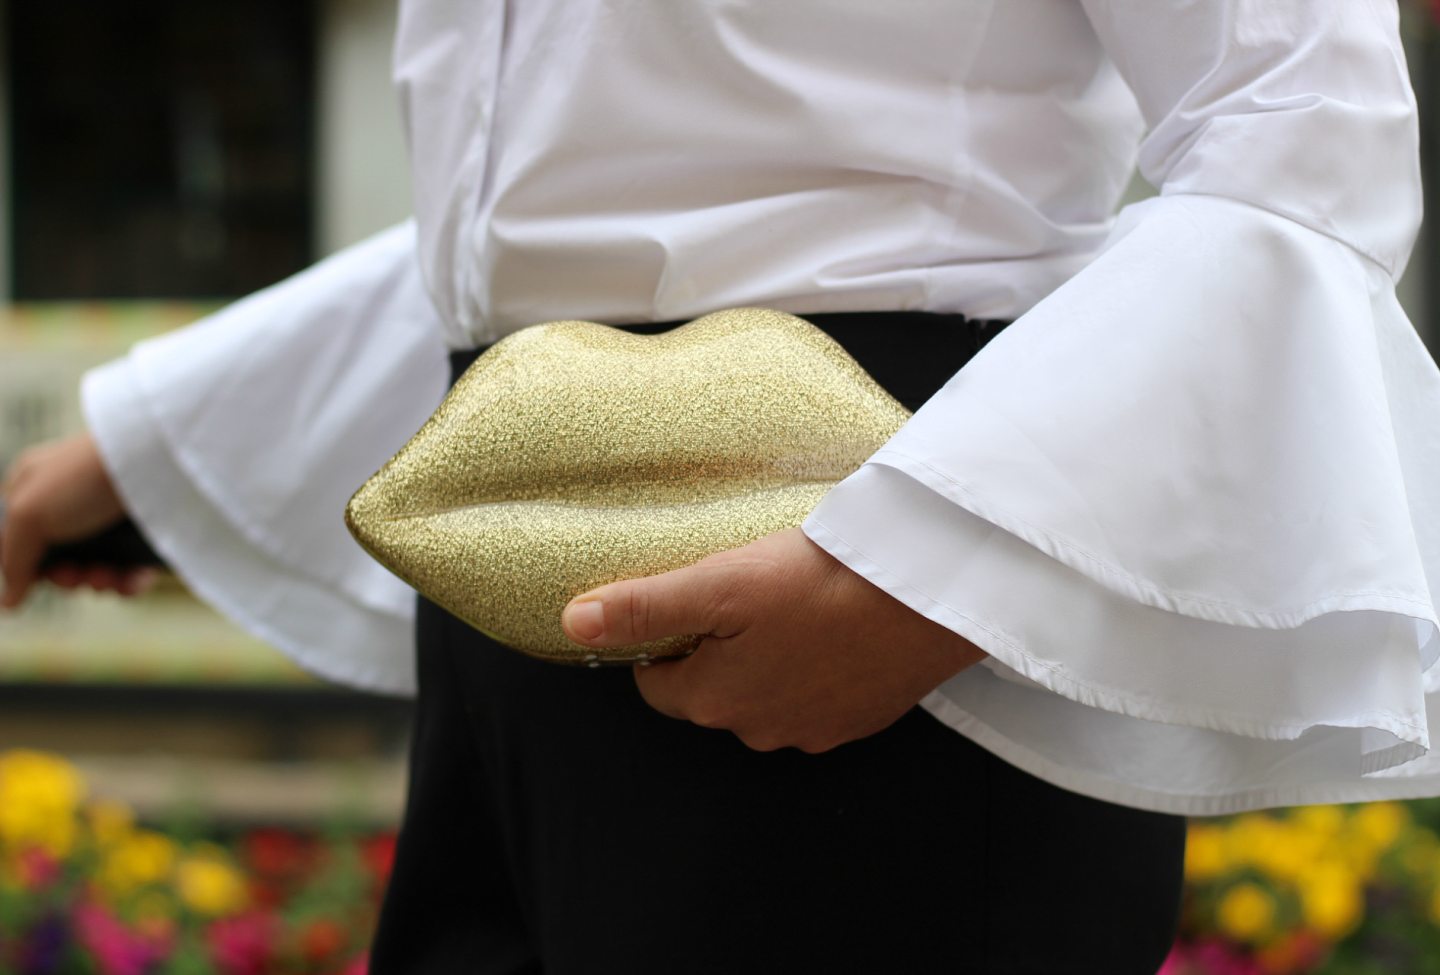 - A photo from my recent shoot for my wife's blog taken on a cloudy day in Enfield. I'm particularly pleased with how this picture came out. I like the movement of the sleeves and how the bag is catching the light.